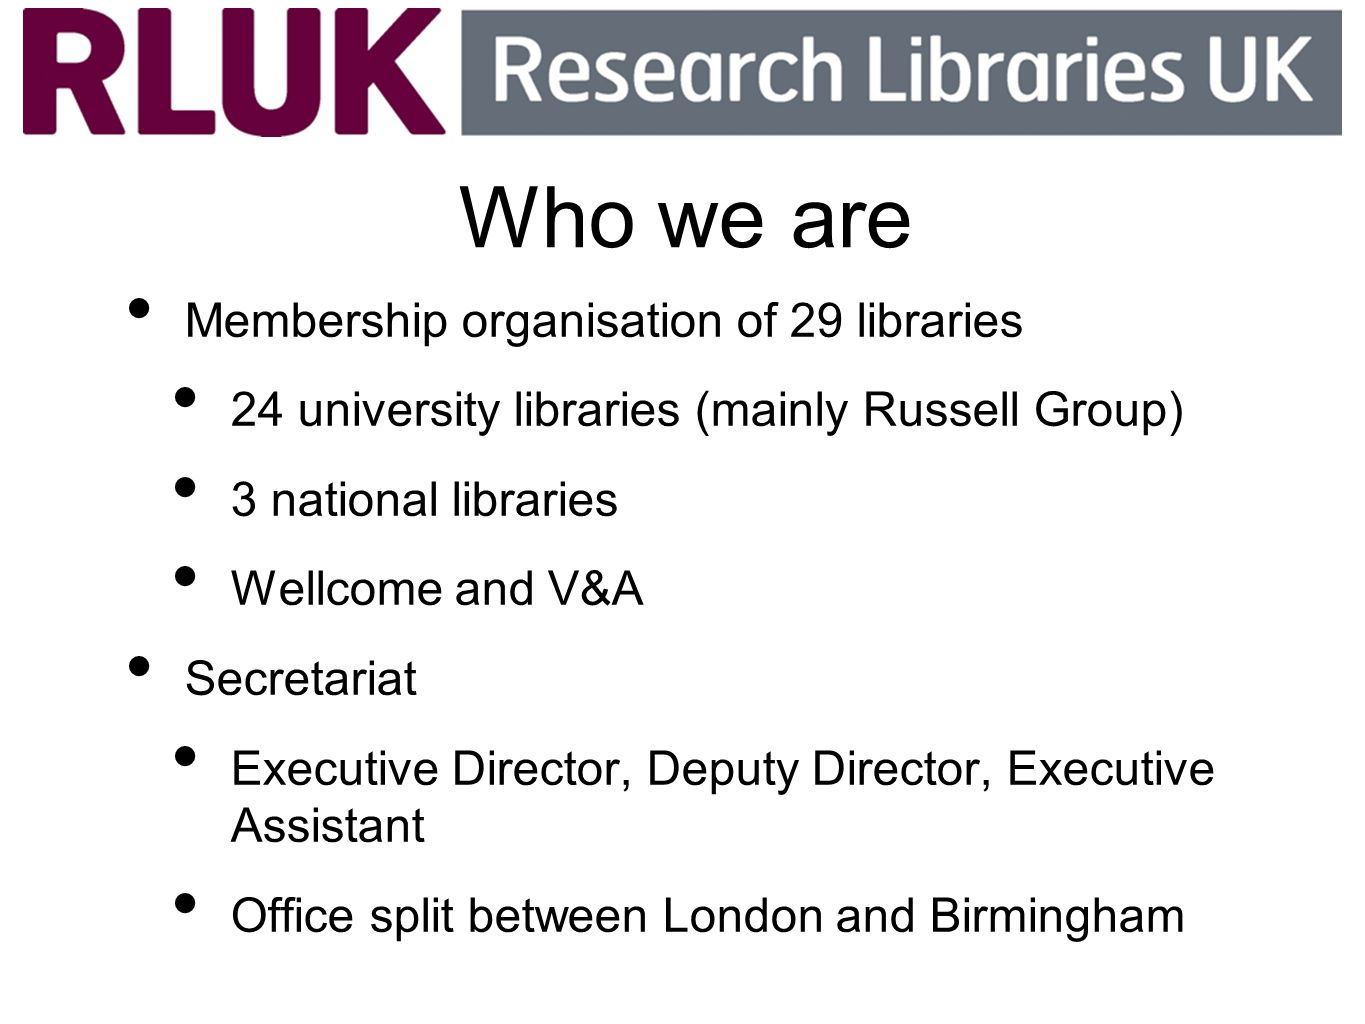 Who we are Membership organisation of 29 libraries 24 university libraries (mainly Russell Group) 3 national libraries Wellcome and V&A Secretariat Executive Director, Deputy Director, Executive Assistant Office split between London and Birmingham